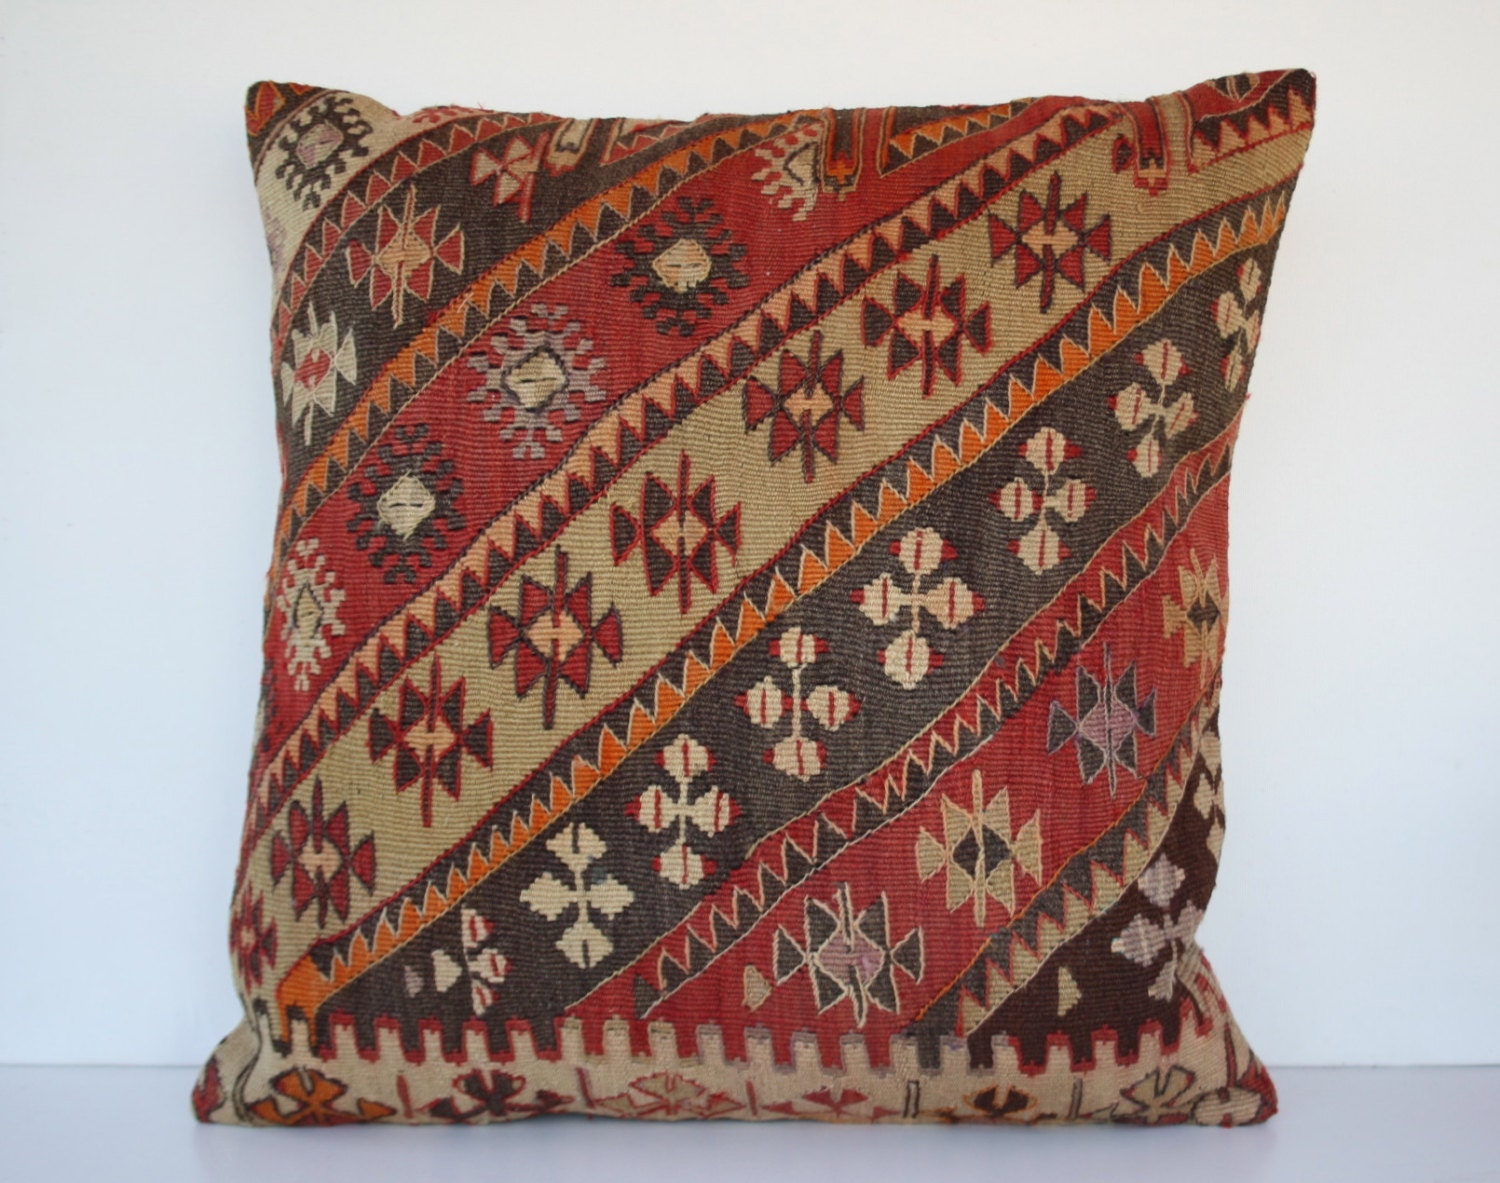 Big Throw Pillows For The Floor : 24 x 24 Large Kilim Pillow Throw Pillow Large Floor by elifartdeco